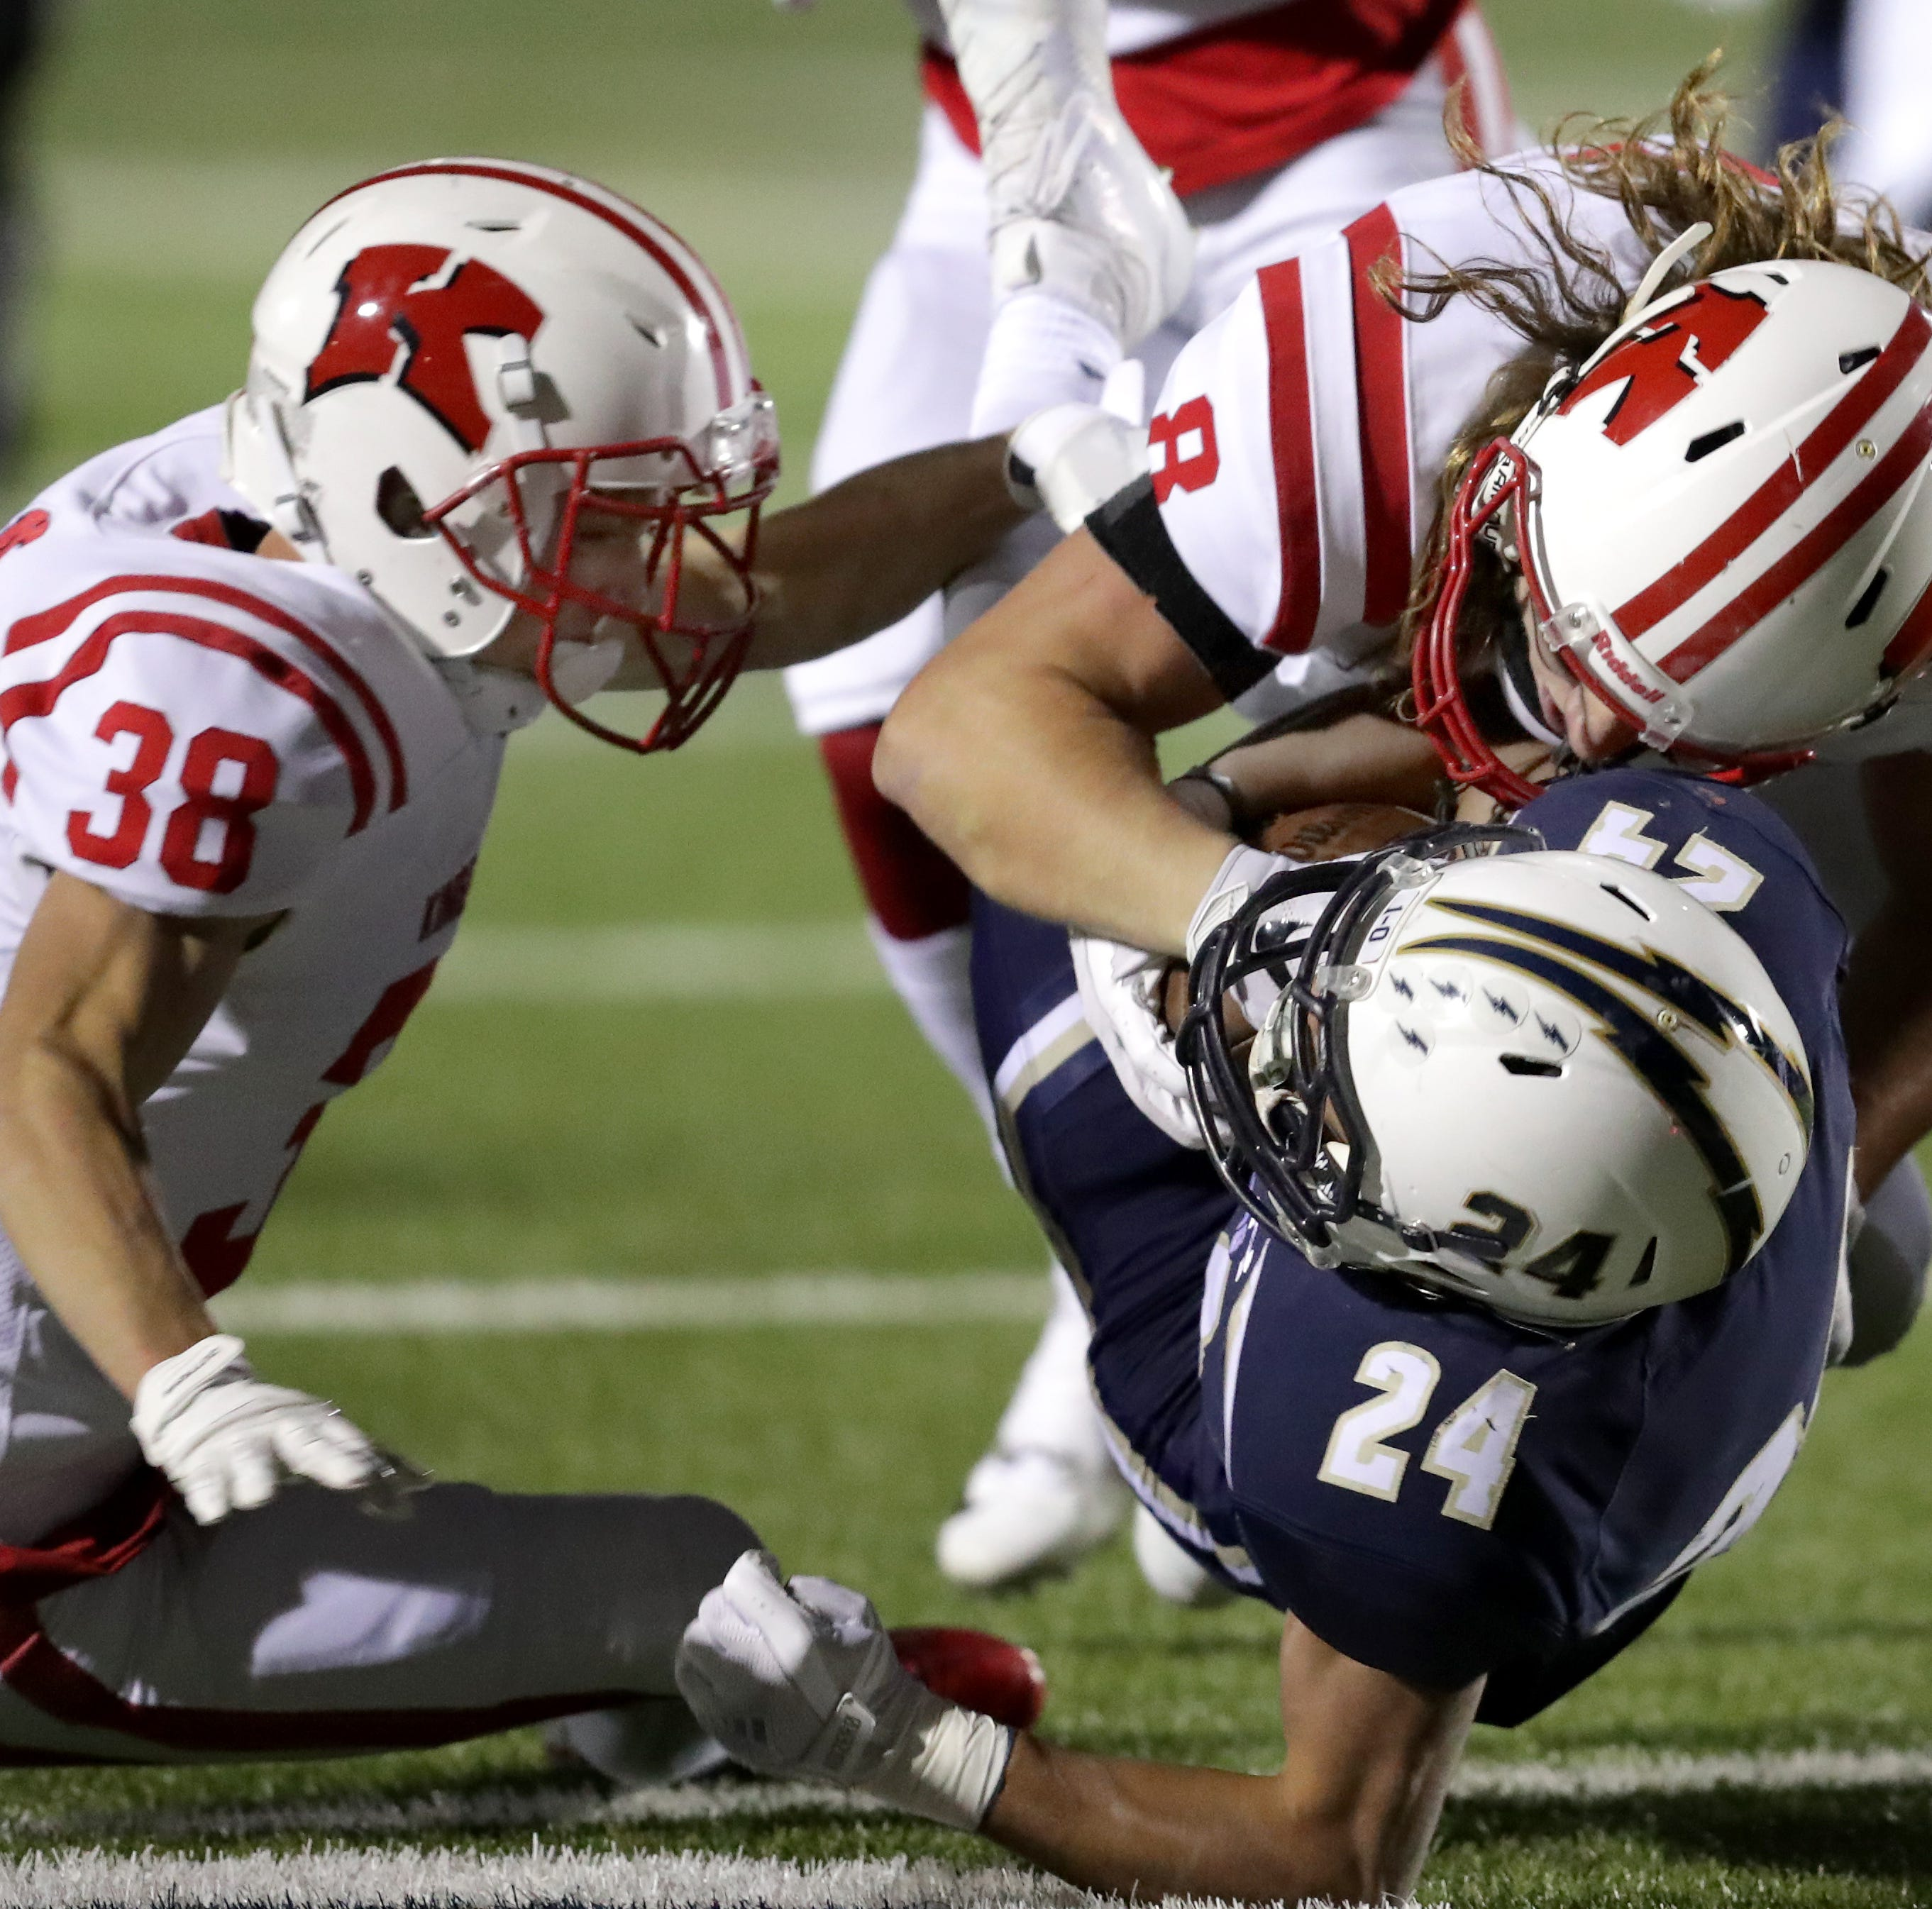 New database: 68 Wisconsin schools have made it to football playoffs, but never won